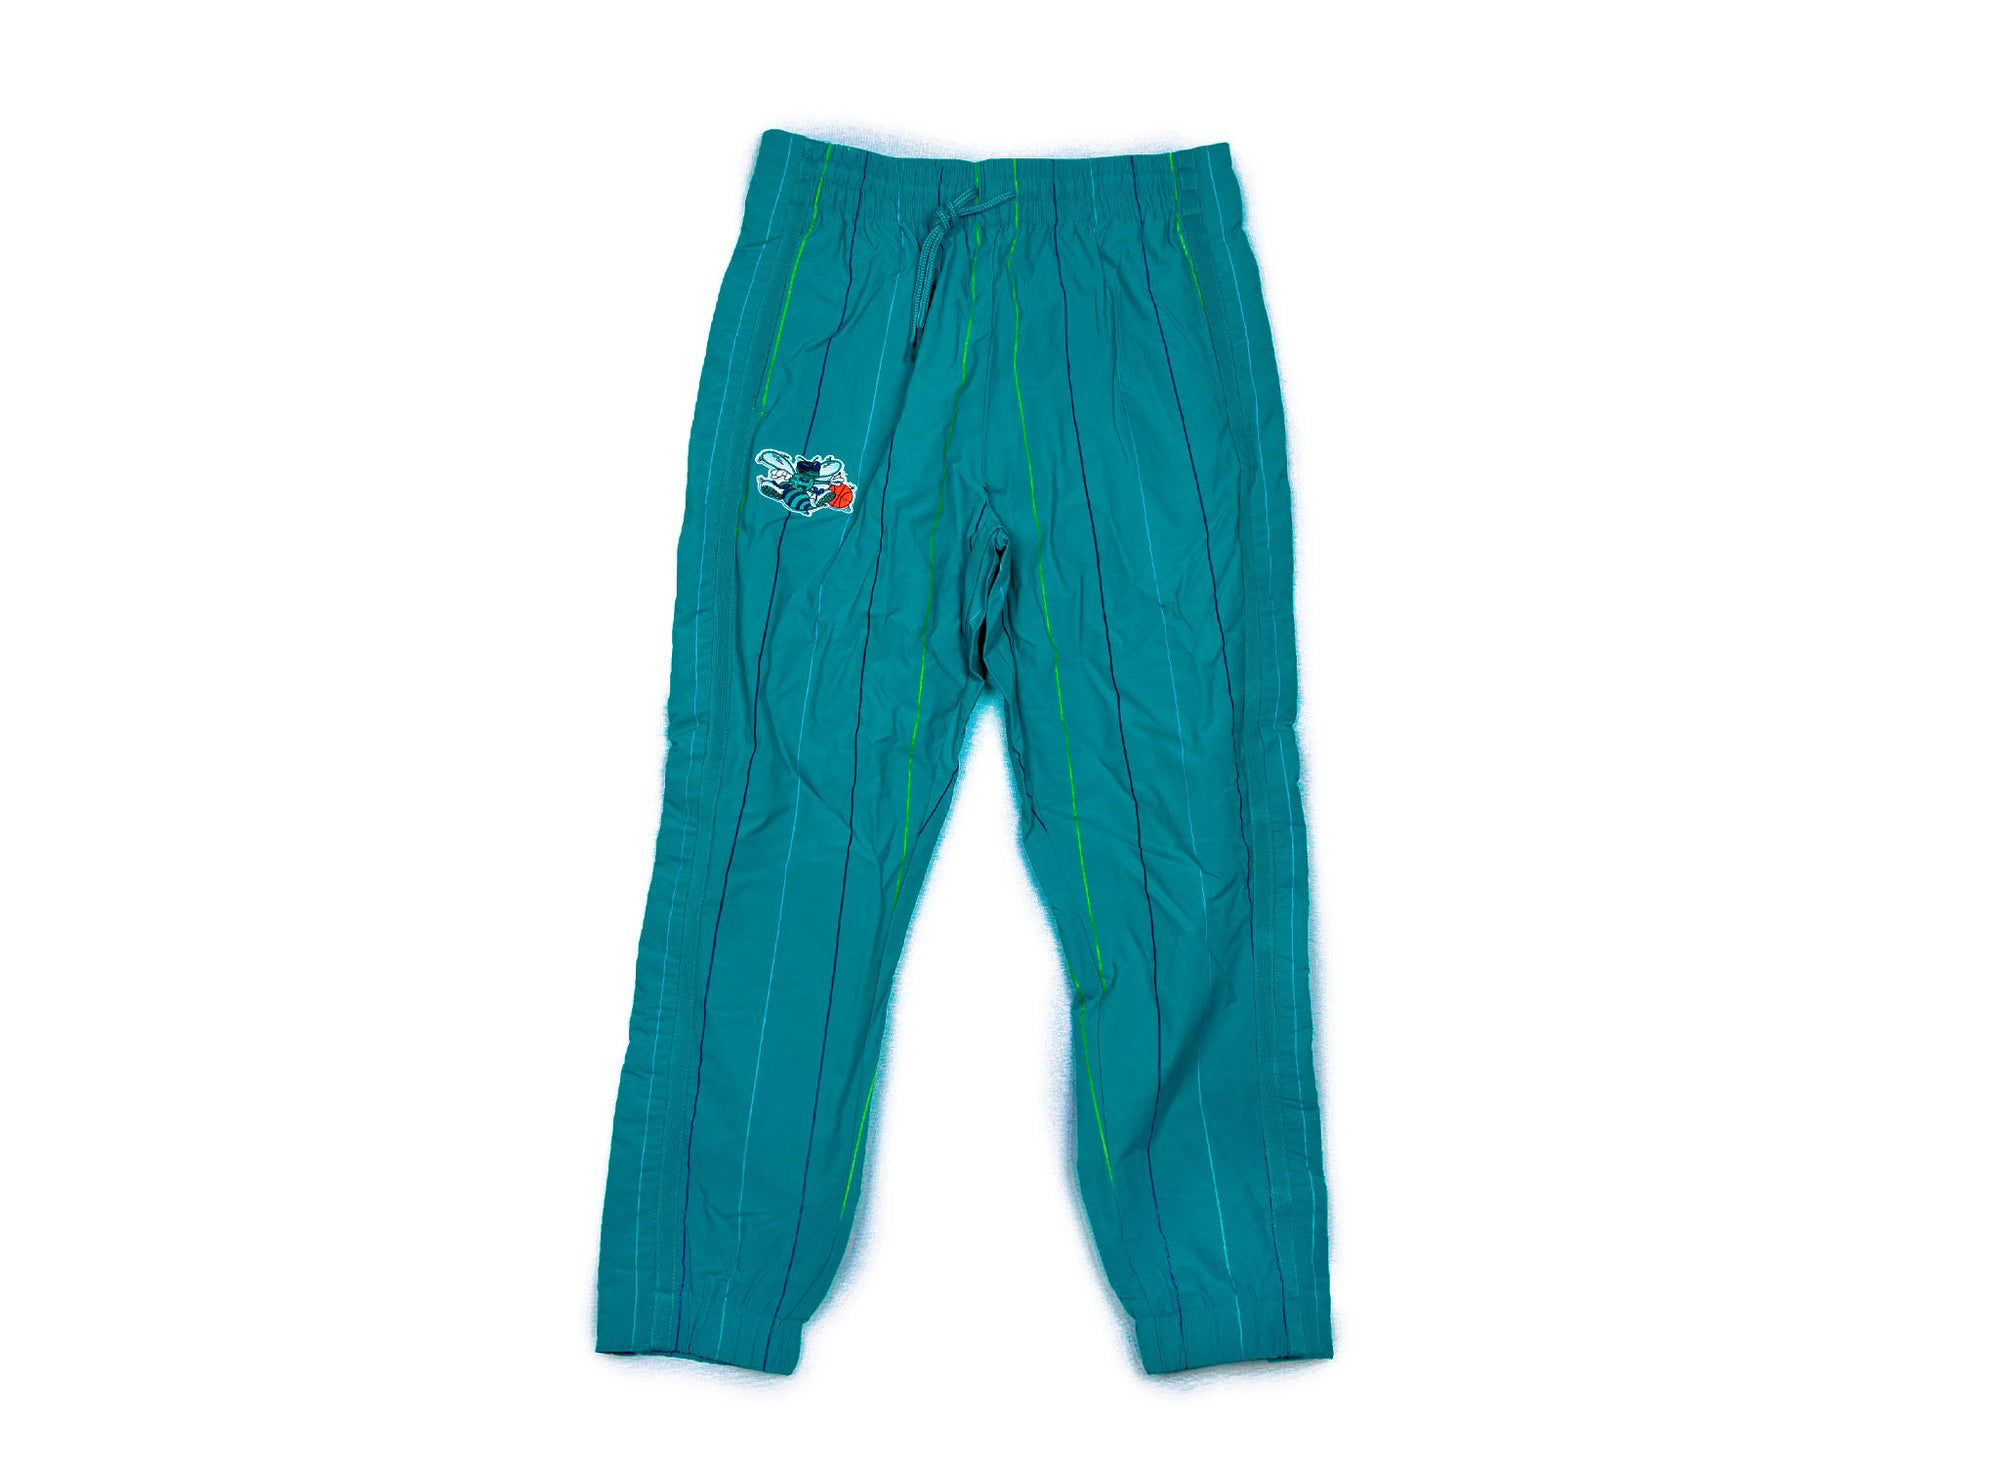 MITCHELL & NESS NBA LIFESTYLE TEAR AWAY JOGGERS 'HORNETS'